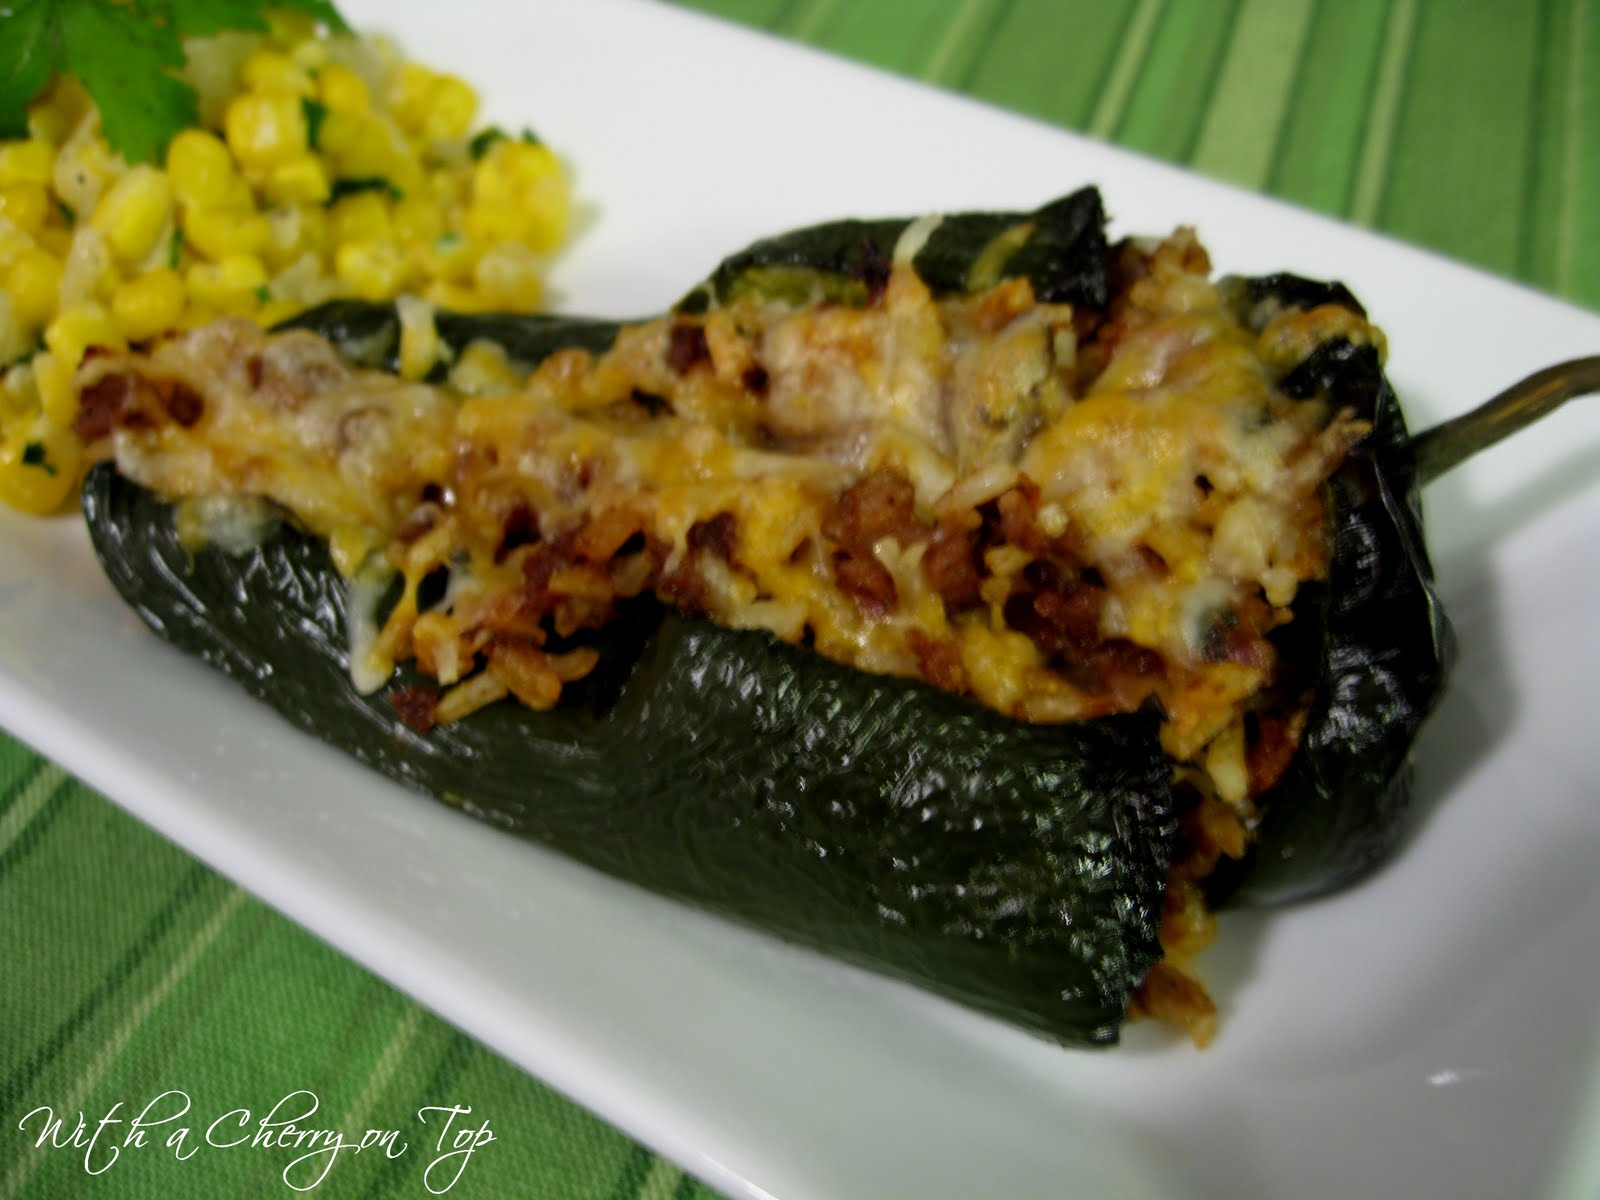 With a Cherry on Top: Stuffed Poblano Peppers